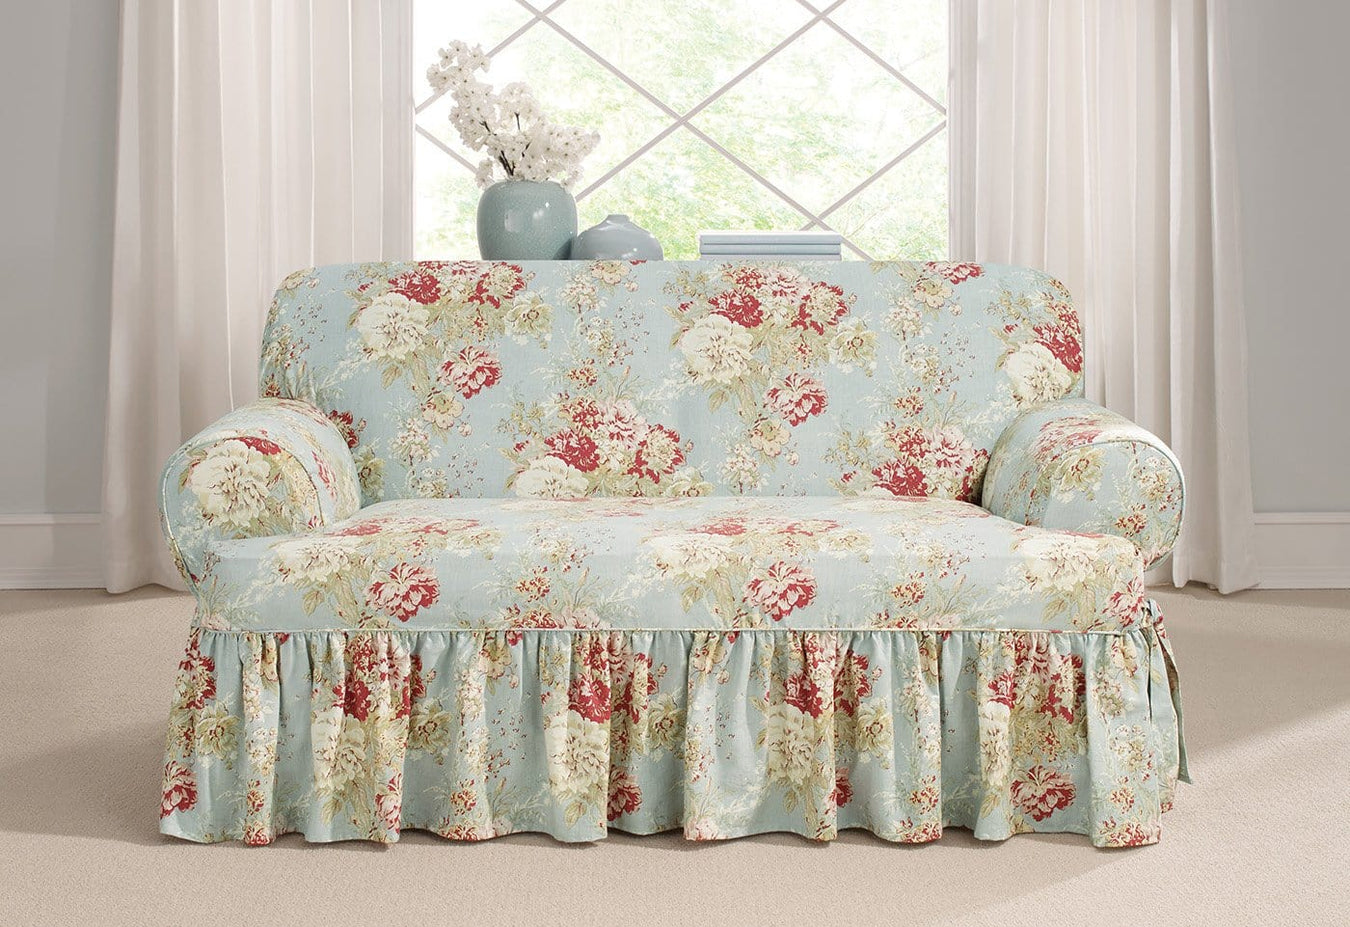 Super Ballad Bouquet By Waverly One Piece Loveseat Slipcover Andrewgaddart Wooden Chair Designs For Living Room Andrewgaddartcom